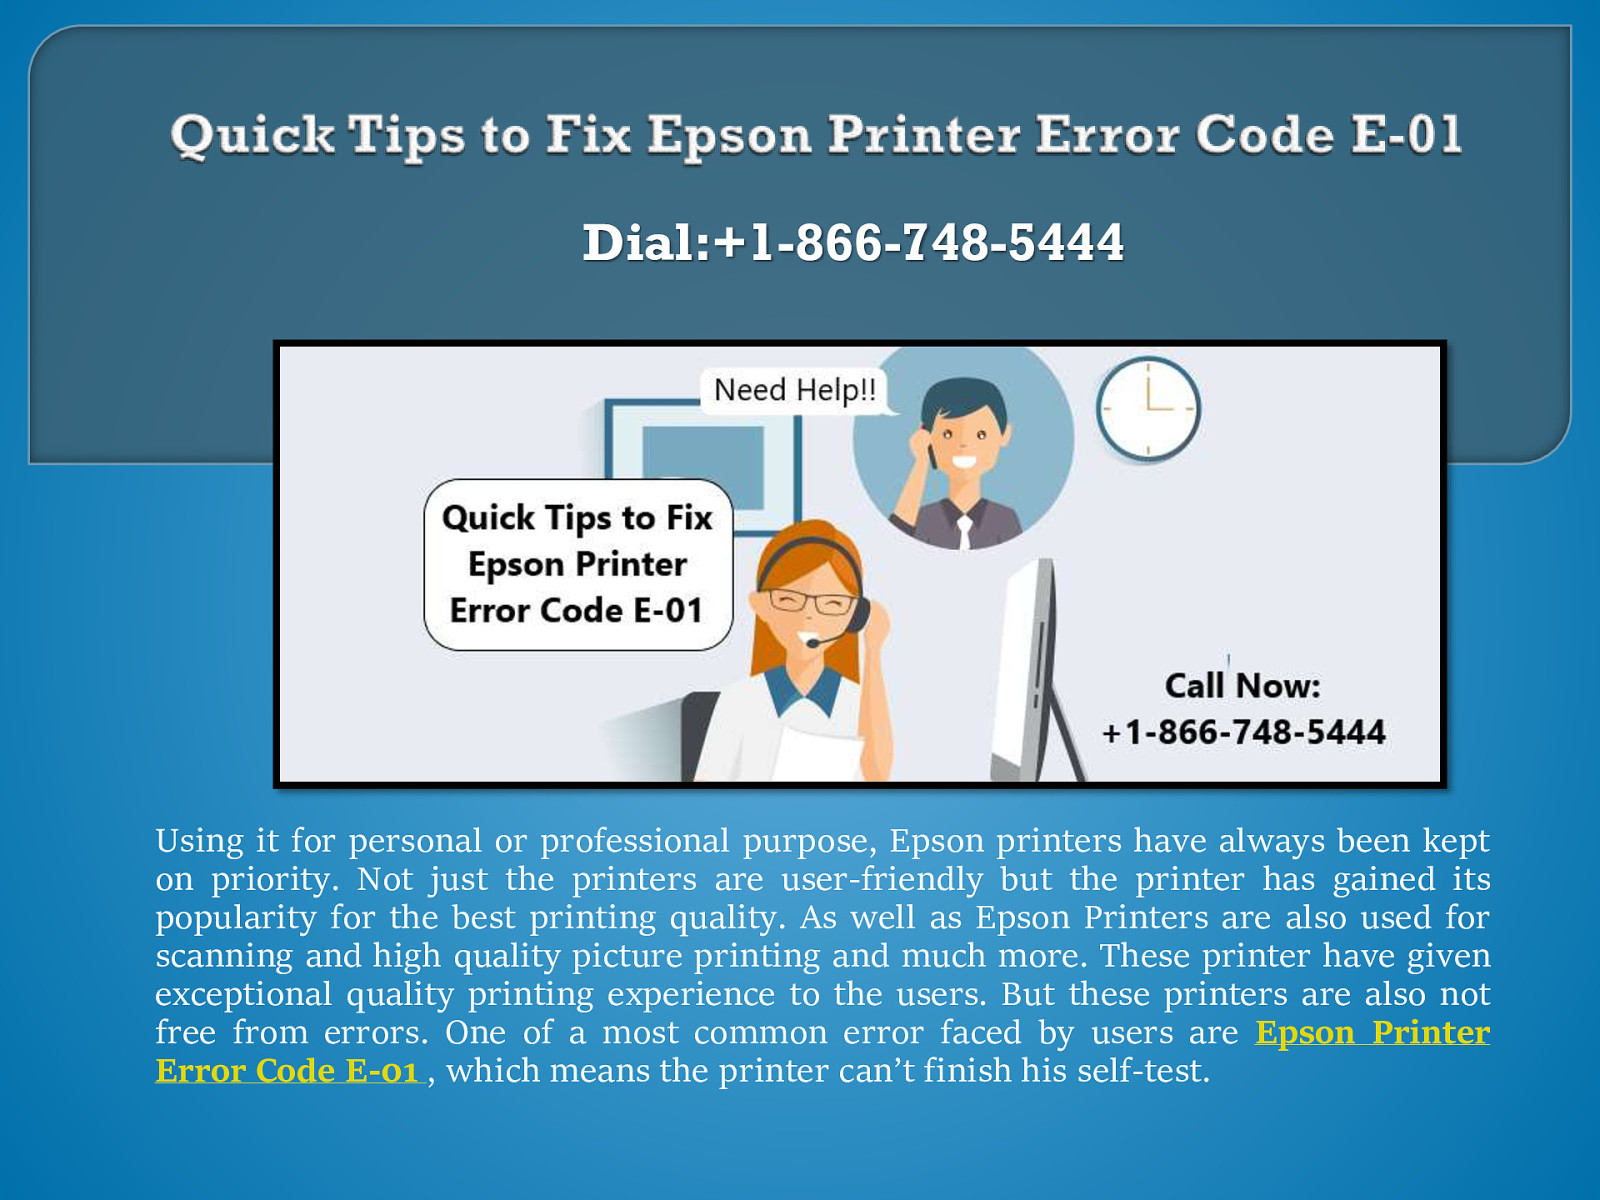 Repair Epson Printer Error Code E-01| Call: +1(866)748-5444